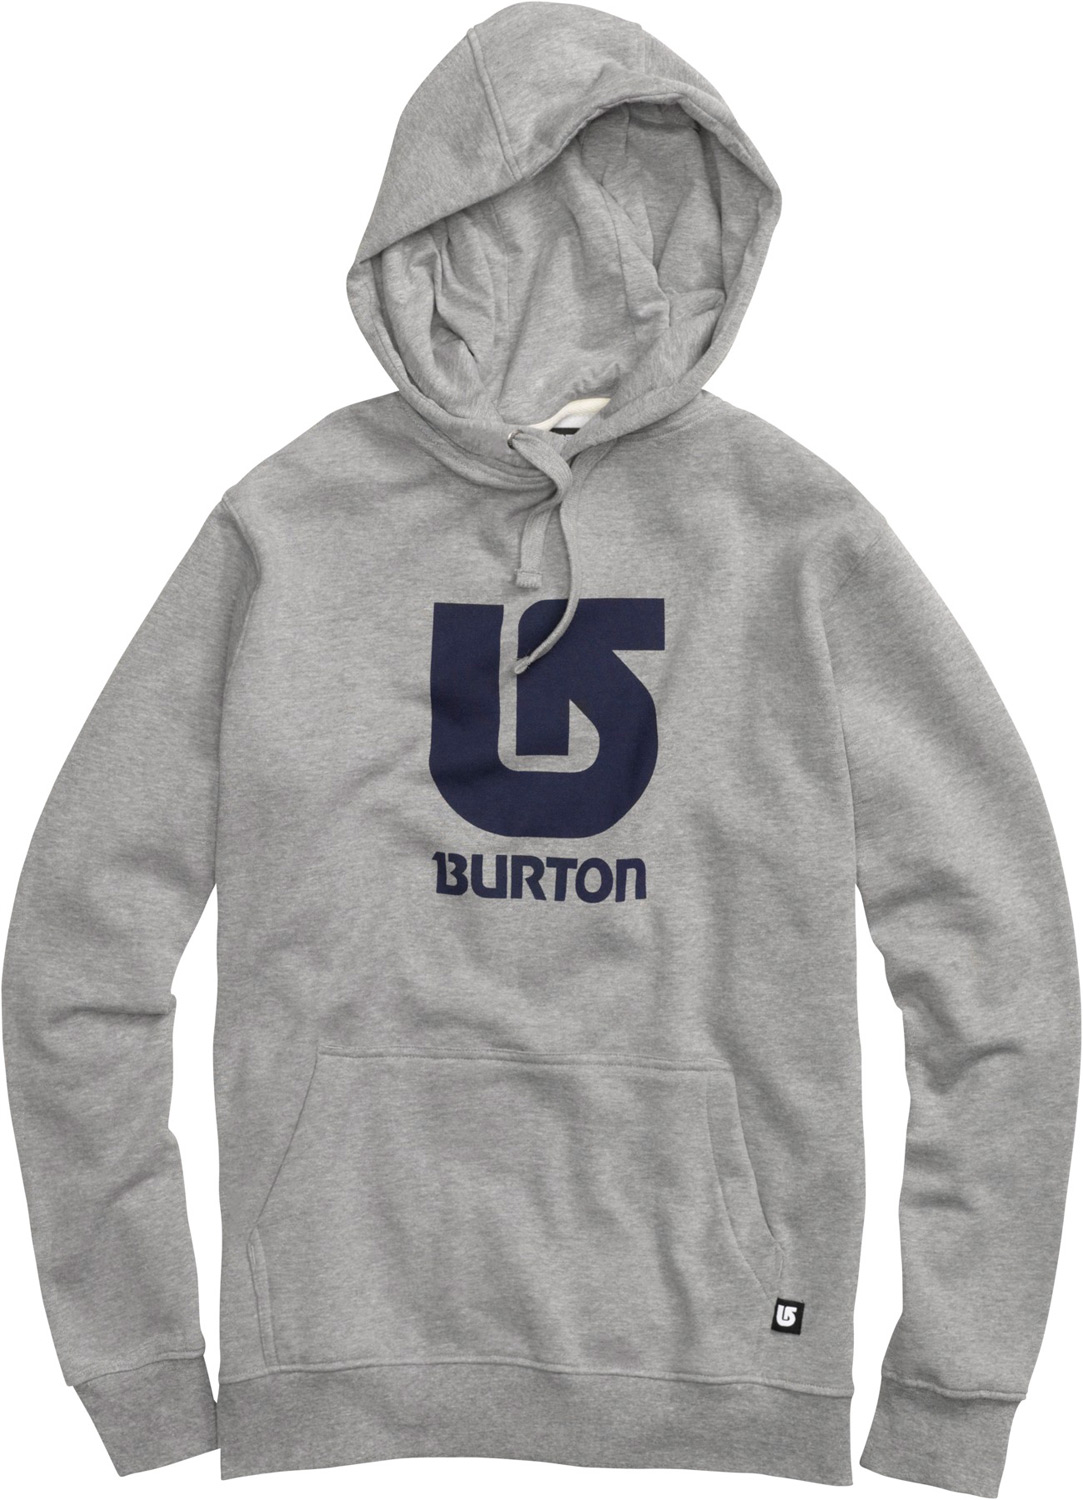 Snowboard Key Features of the Burton Logo Vertical Pullover Hoodie: 80% Cotton, 20% Polyester, 300G Fleece Kangaroo Pocket with Interior Media Stash Screen Print on Chest Regular Fit - $51.00